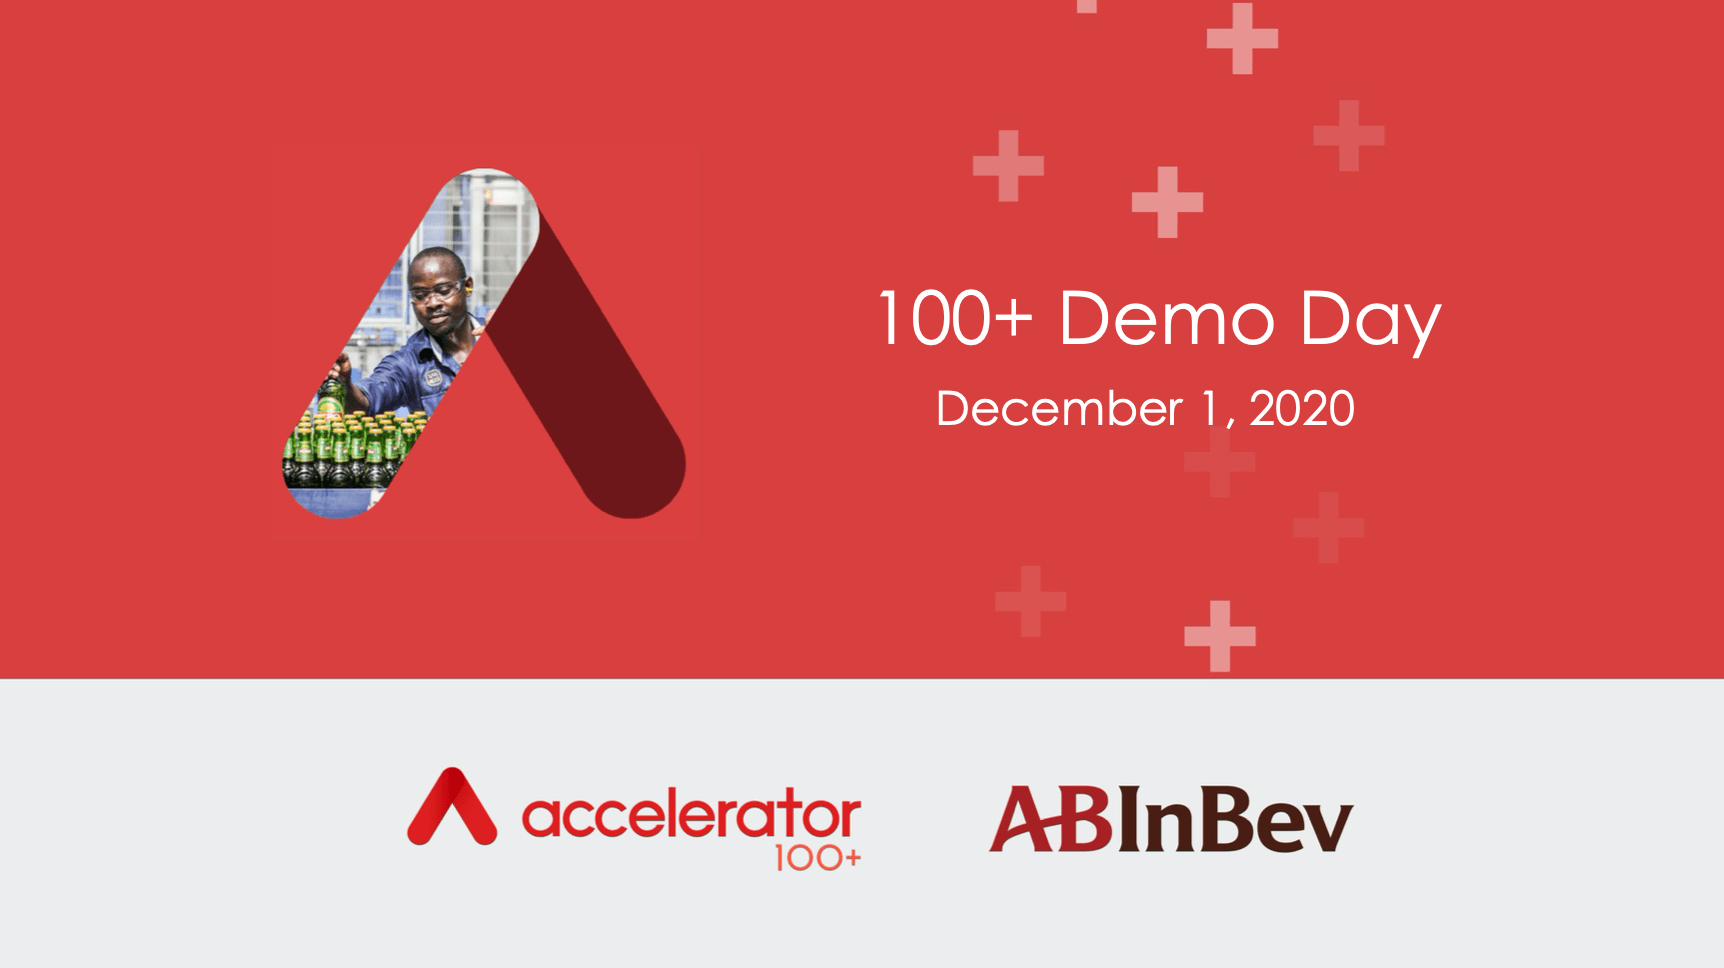 AB InBev's 100+ Sustainability Accelerator Holds 2nd Demo Day with 13 Startups